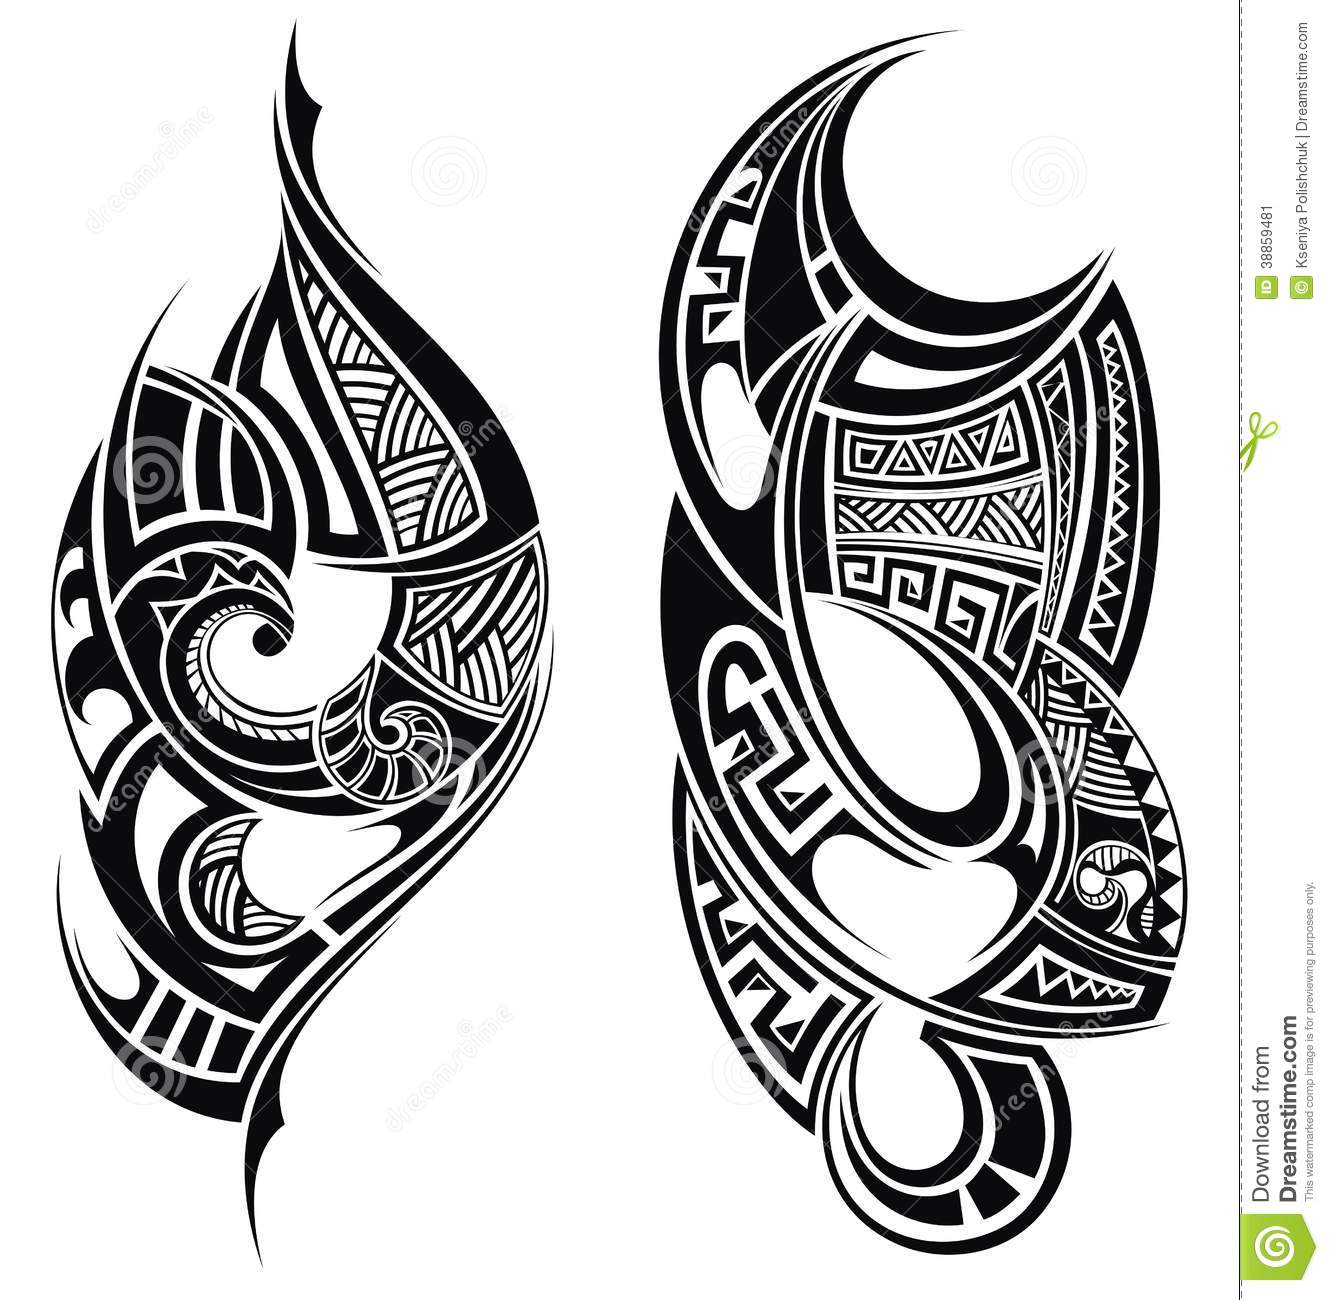 tribal tattoo elements stock vector illustration of scroll 38859481. Black Bedroom Furniture Sets. Home Design Ideas